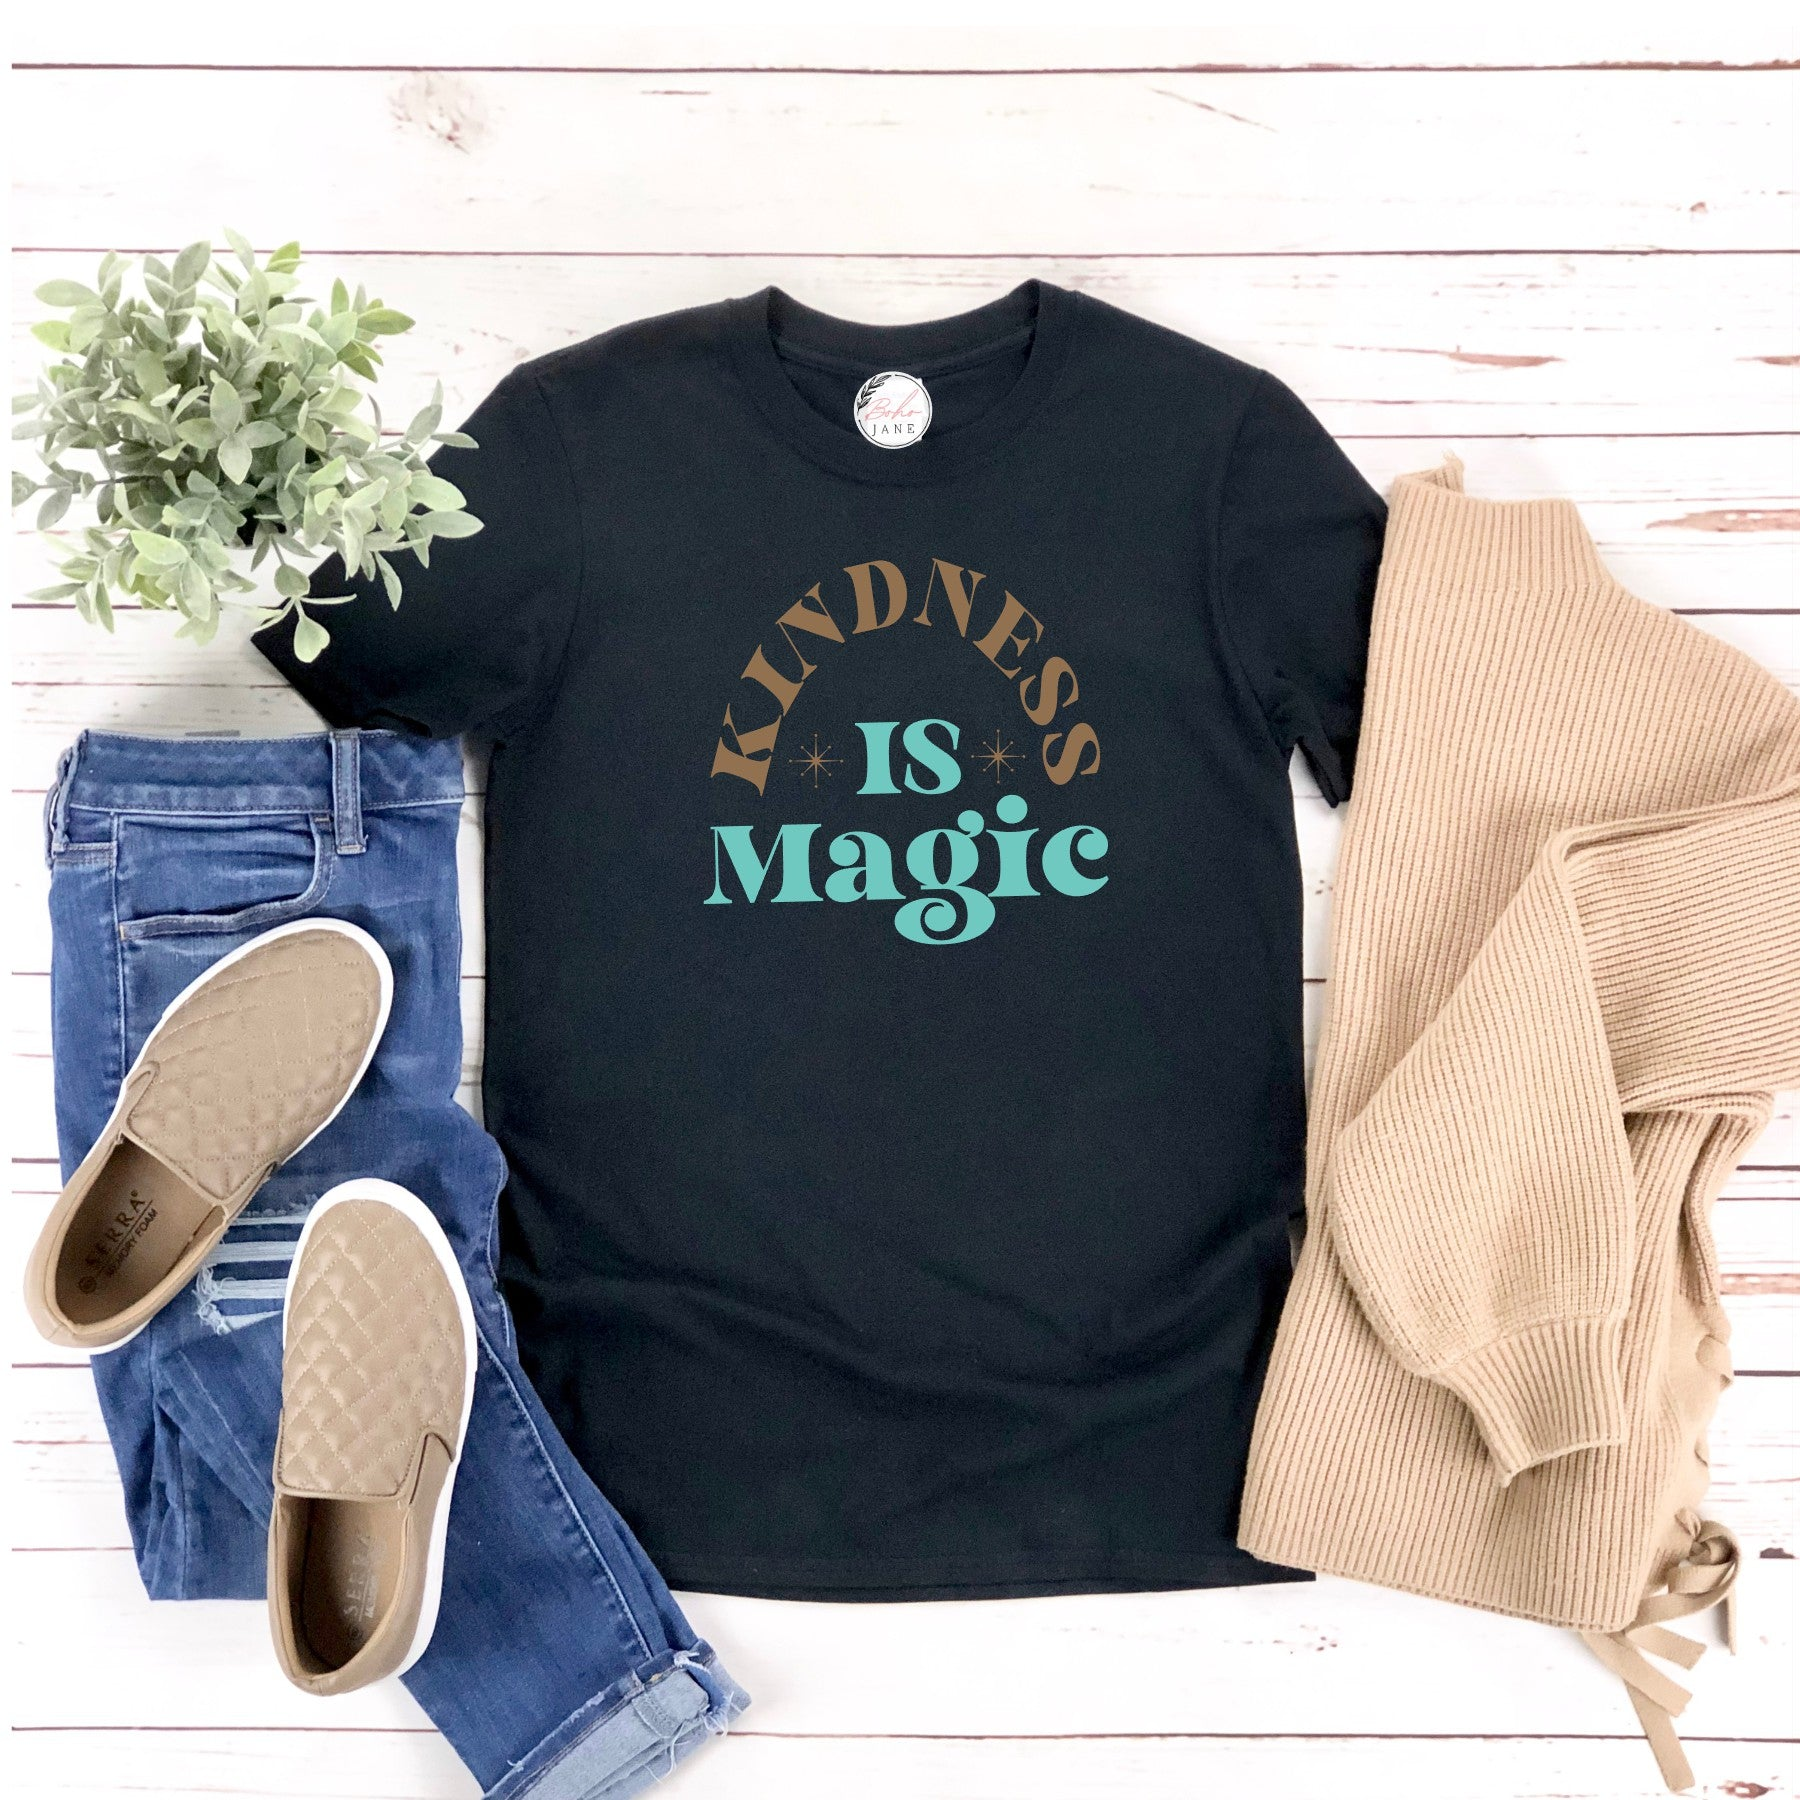 Kindness is Magic Tee